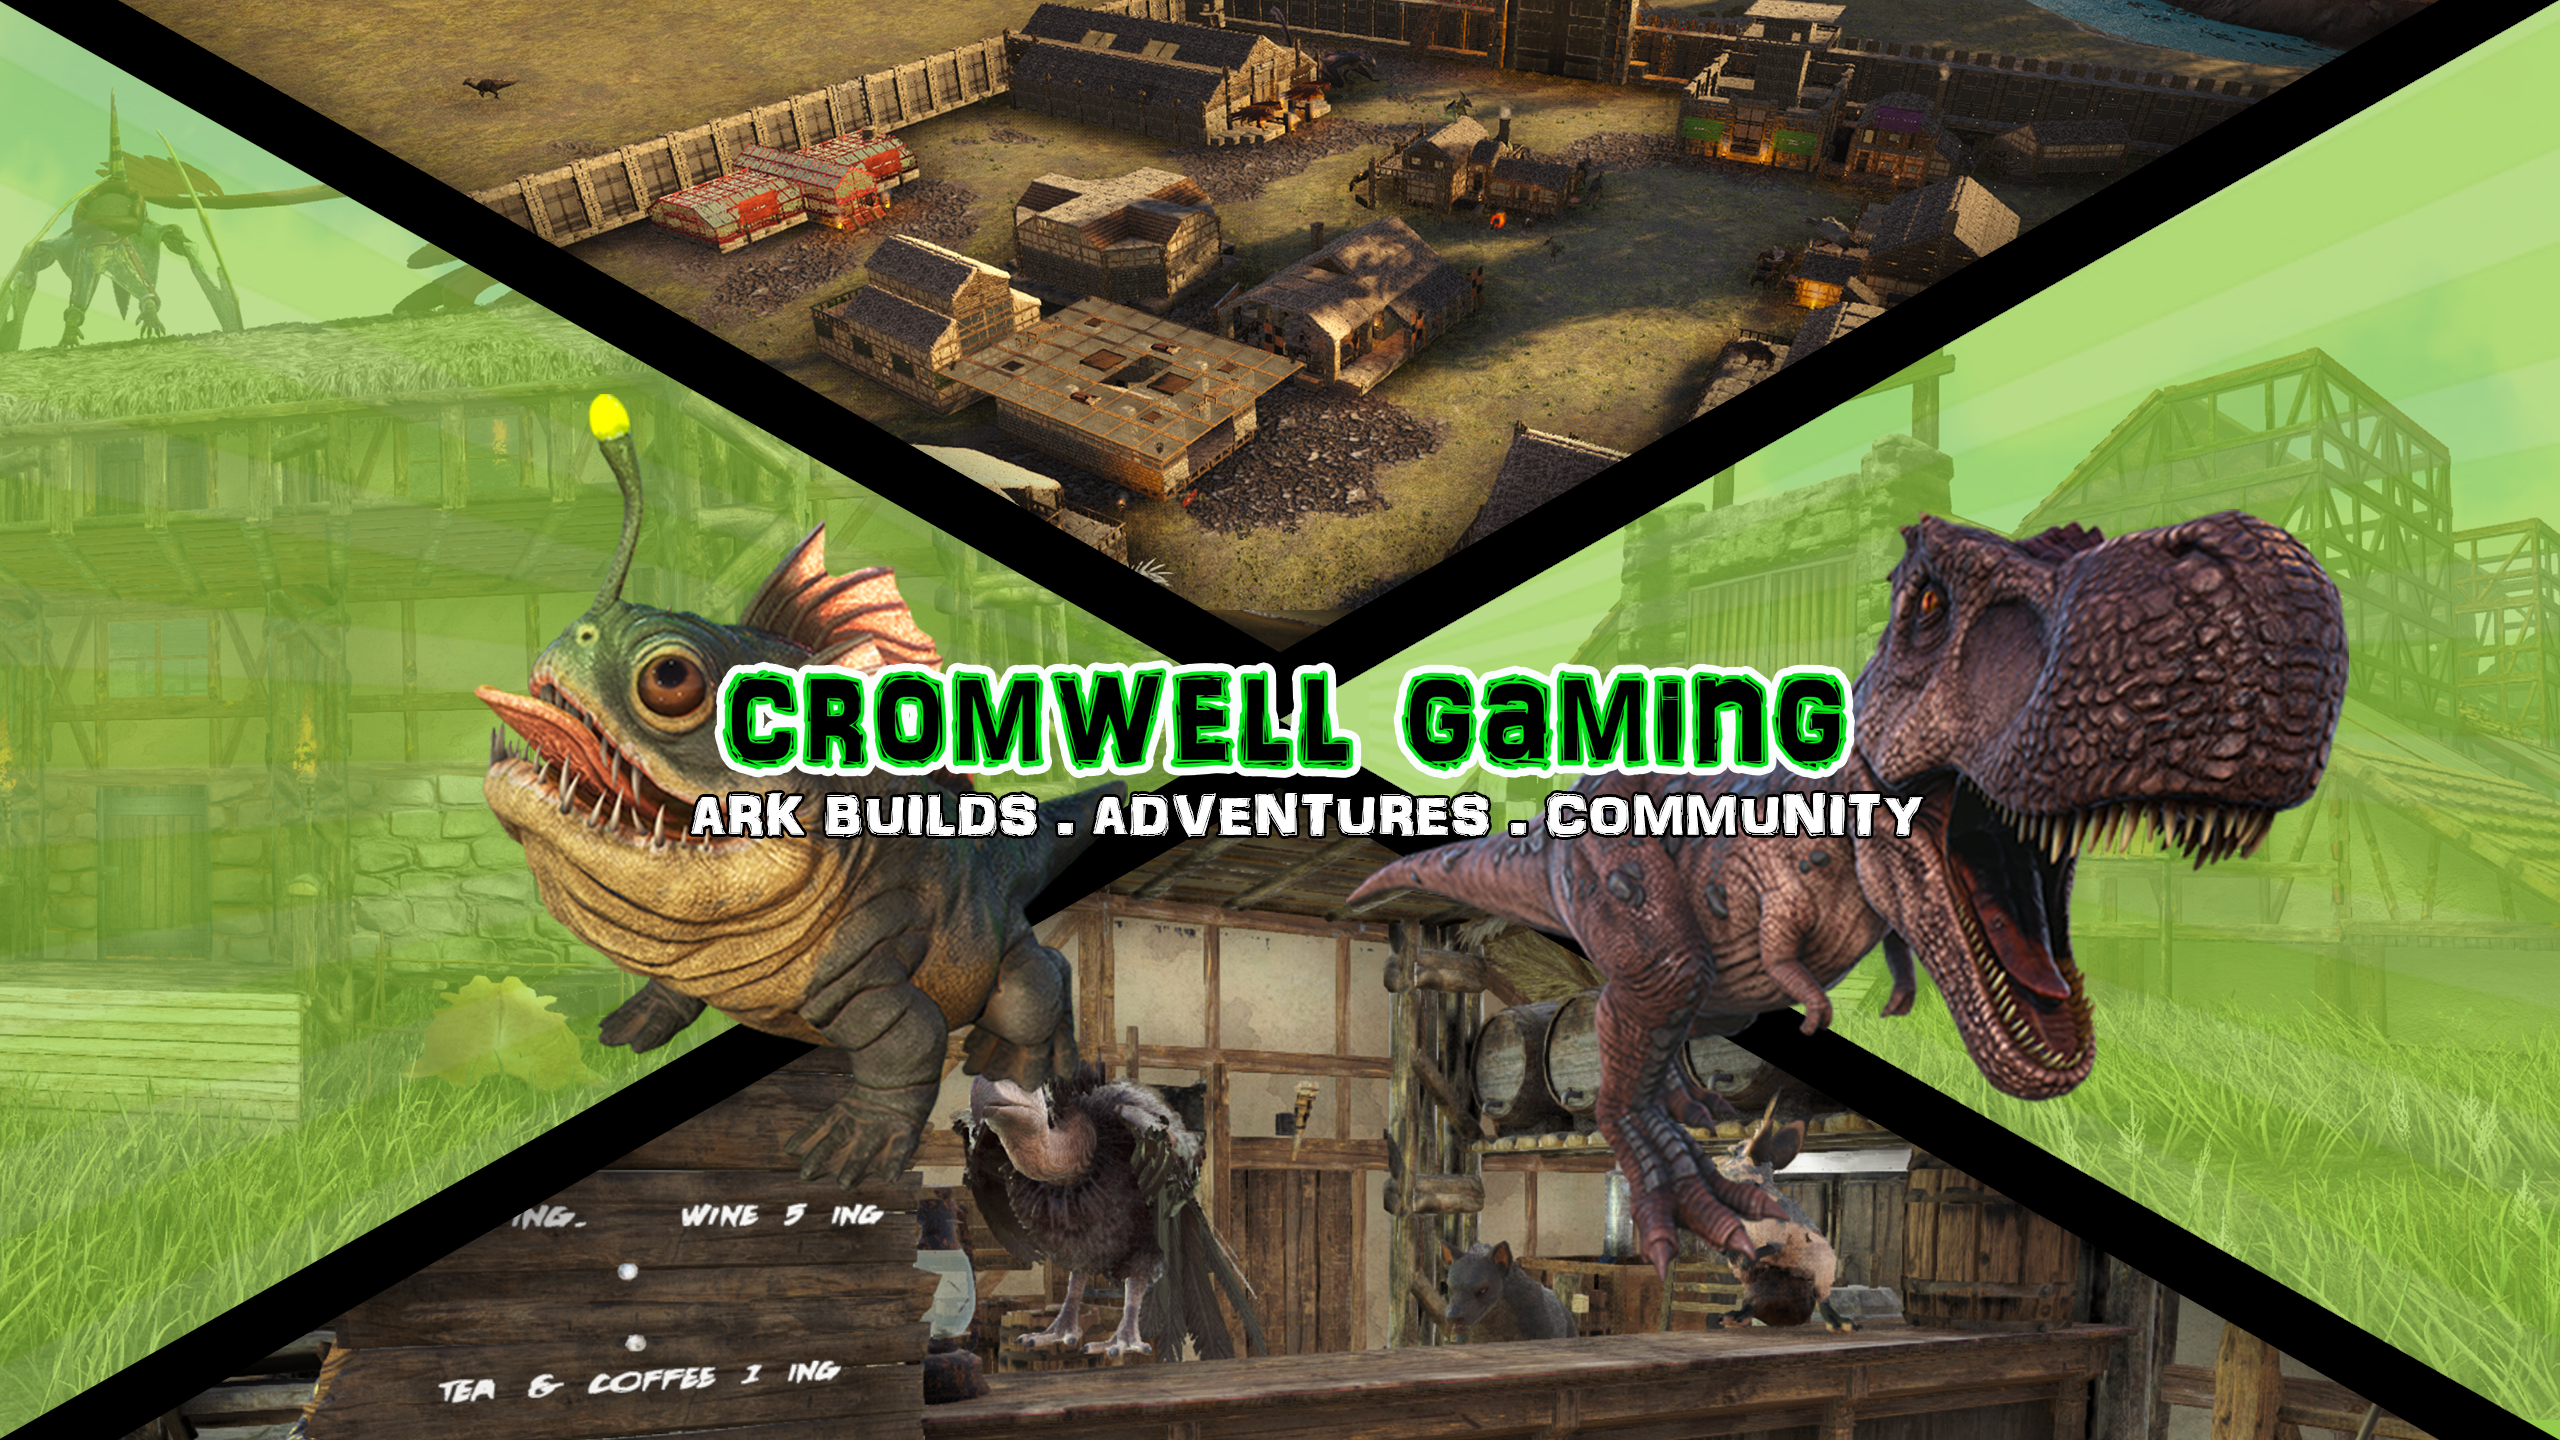 Cromwell Gaming Is Creating Ark Pvprp Server Balanced Boosted